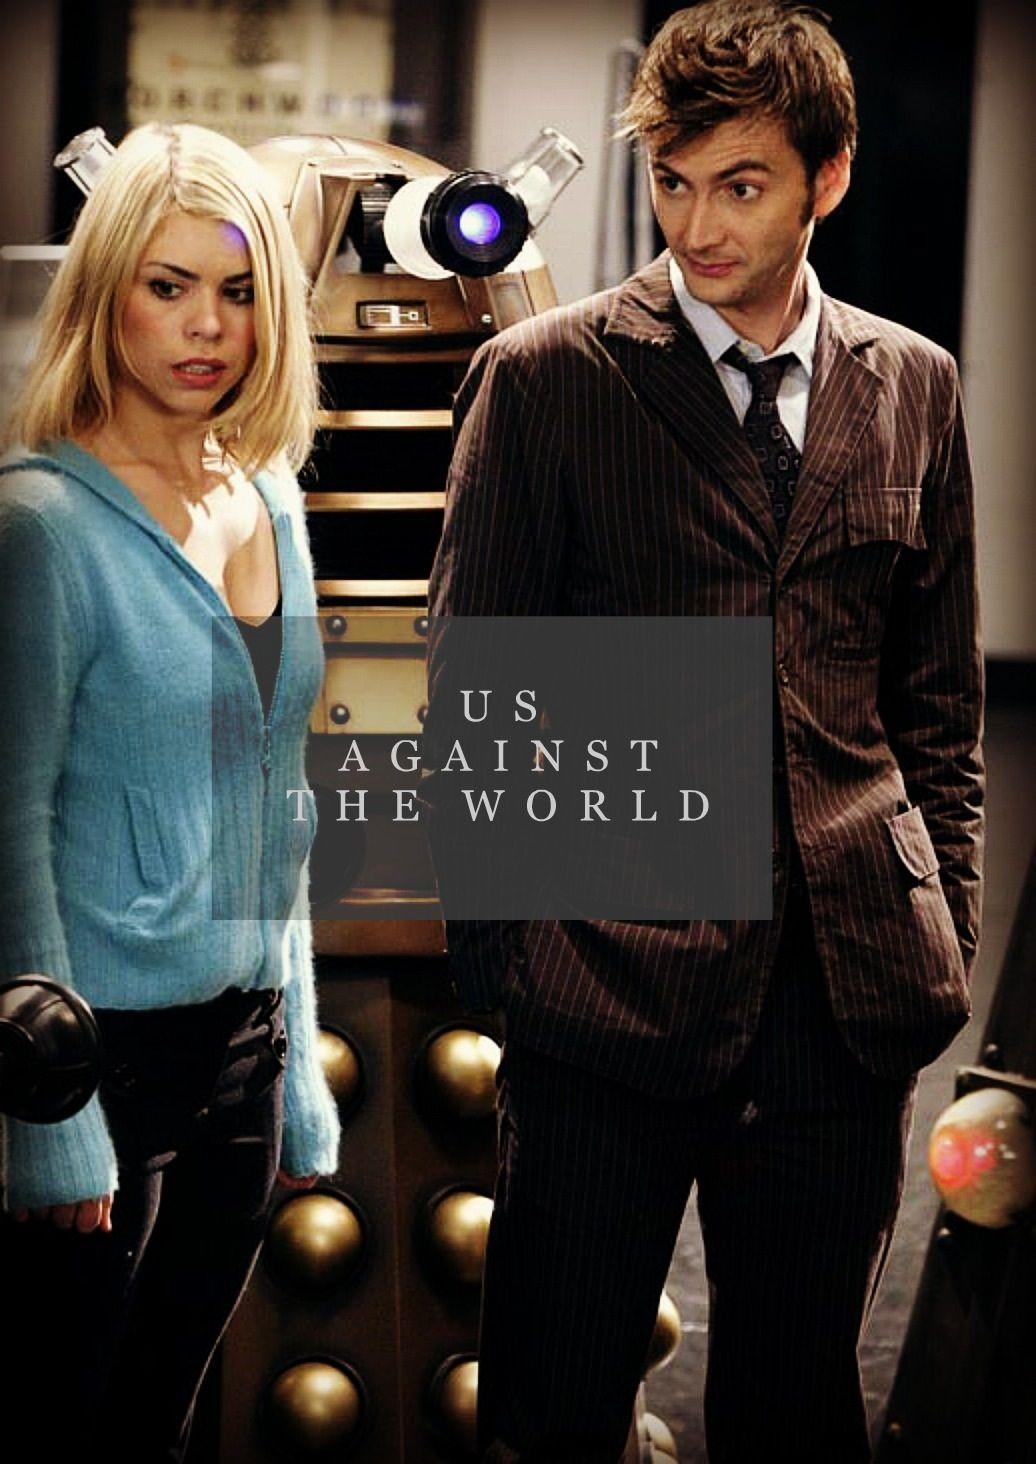 Us against the world #DoctorWho #TenthDoctor #Rose